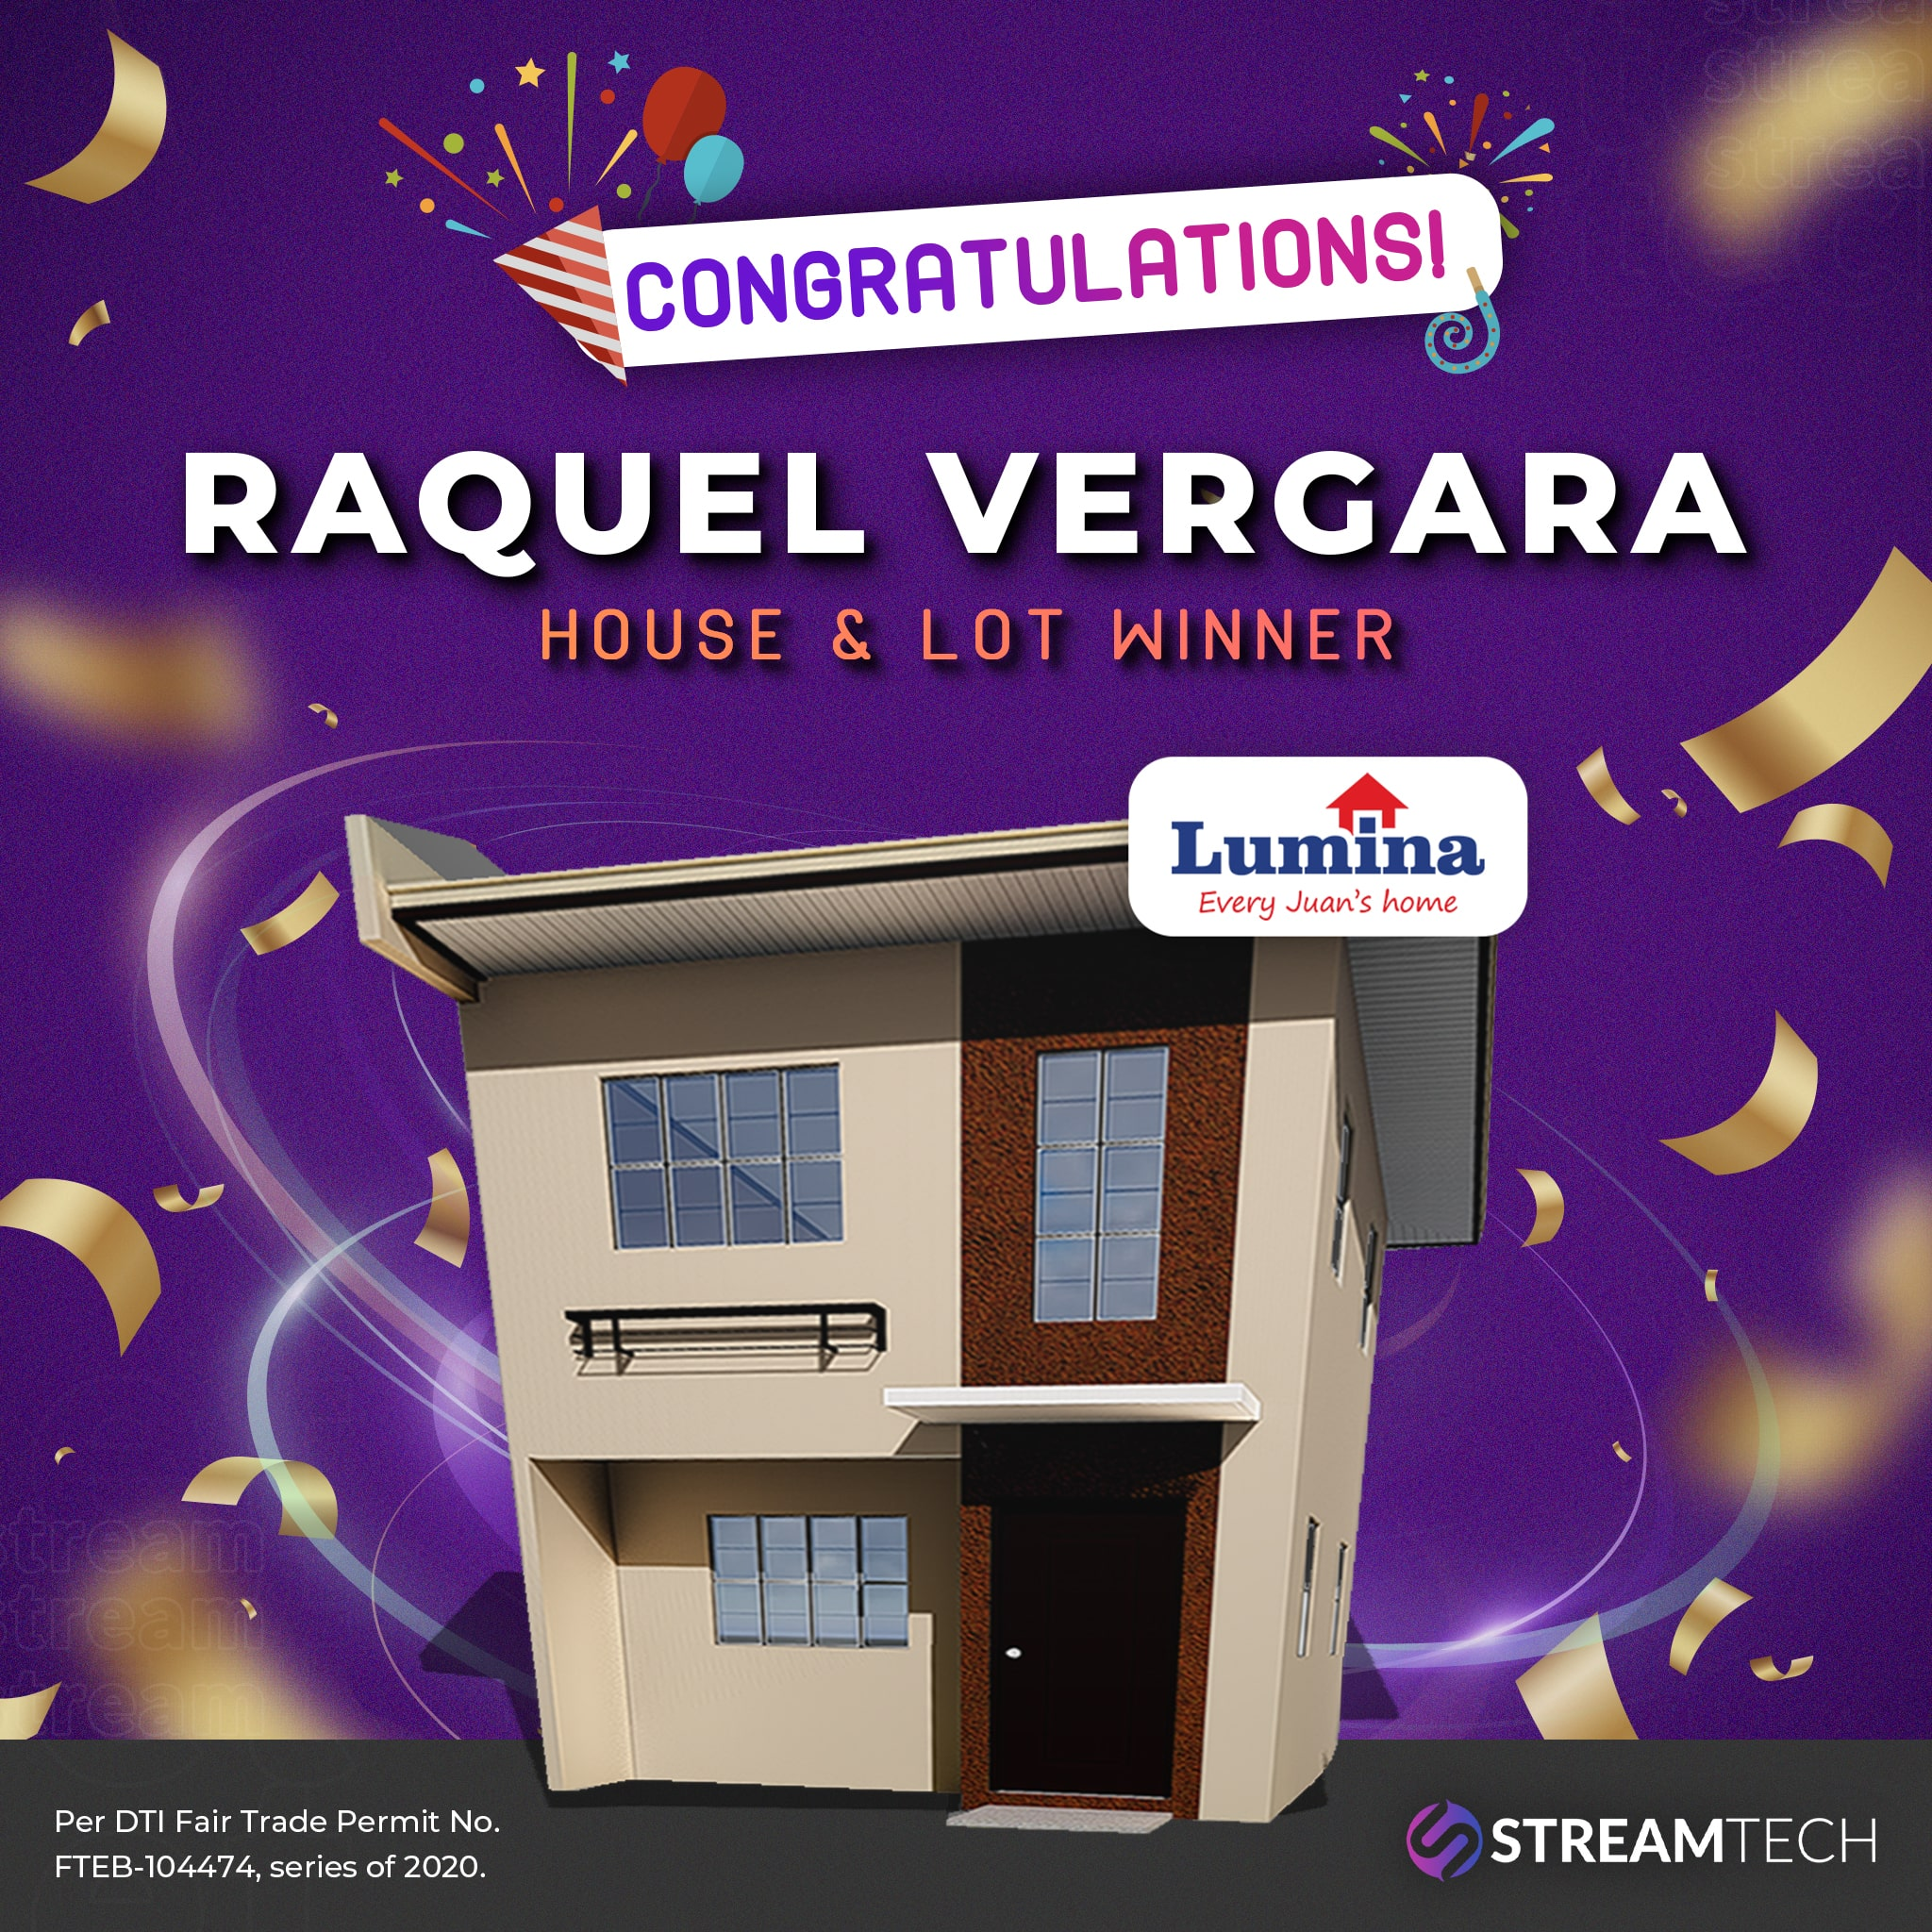 Congratulations to the first House and Lot Winner, from Streamtech Fiber Internet!